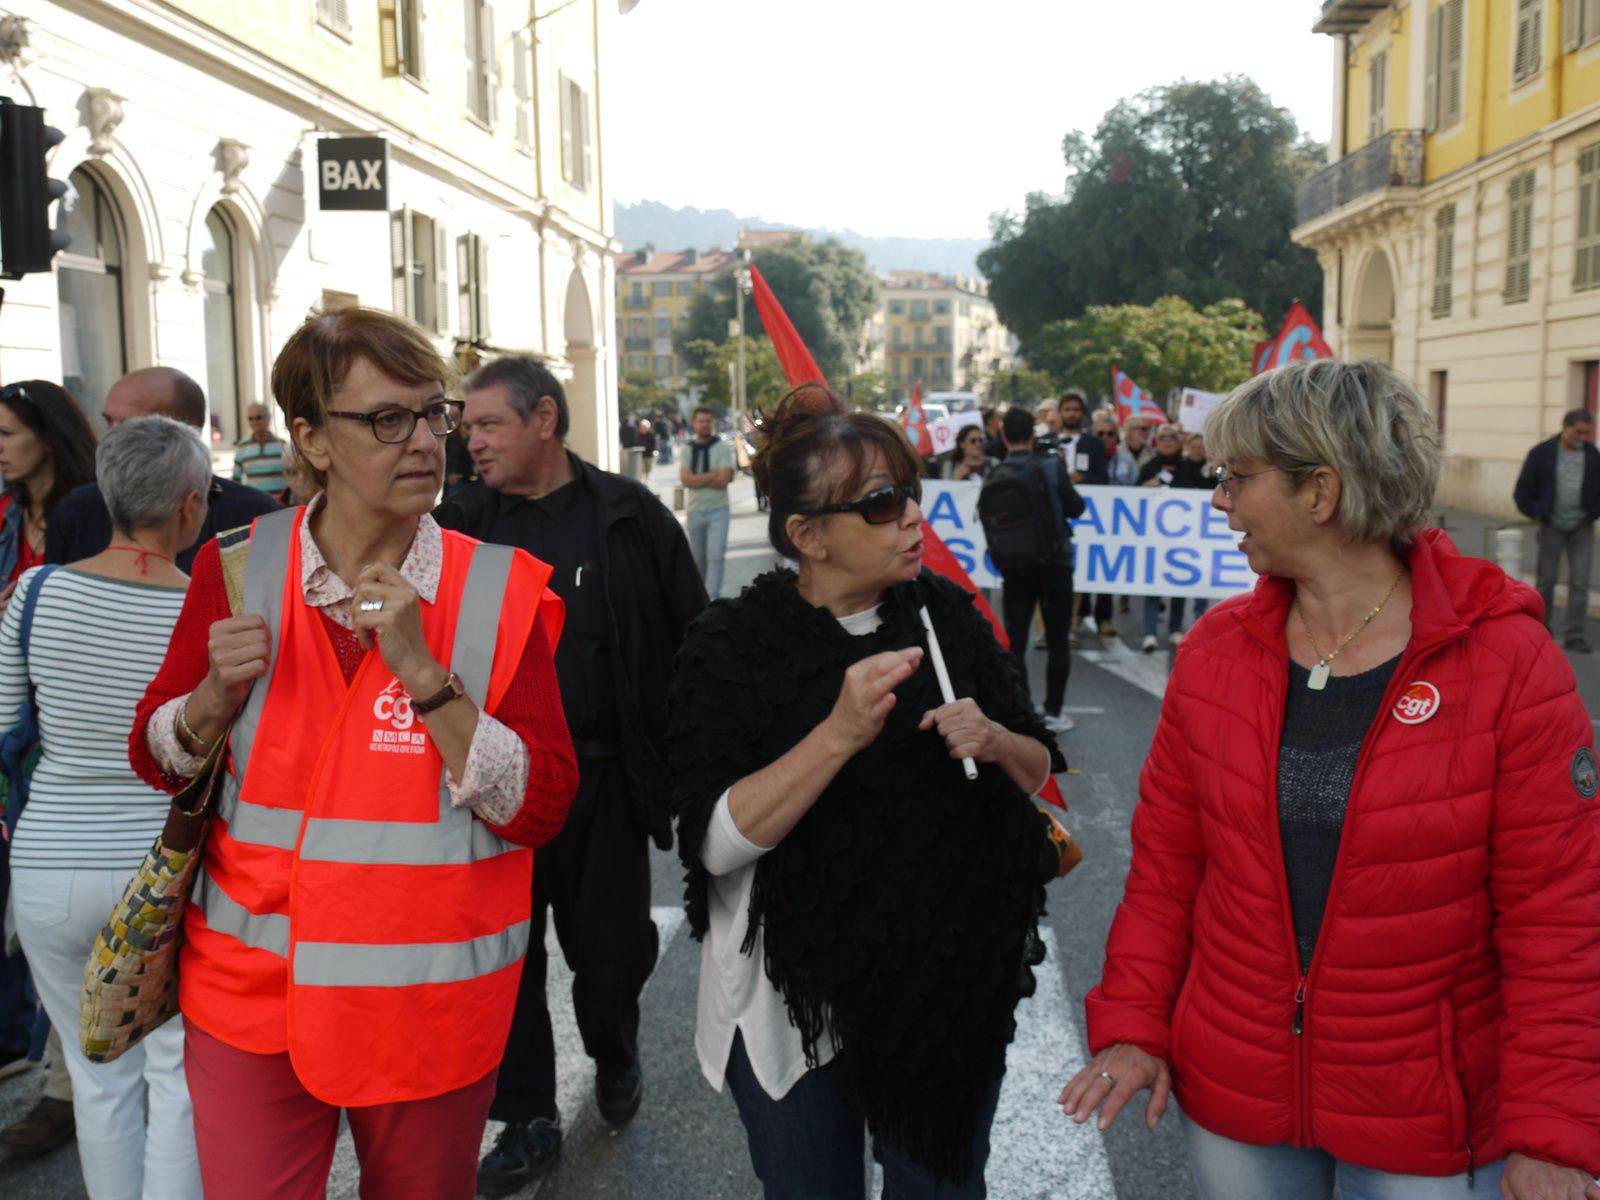 La manif du 19 octobre à Nice en 30 photos